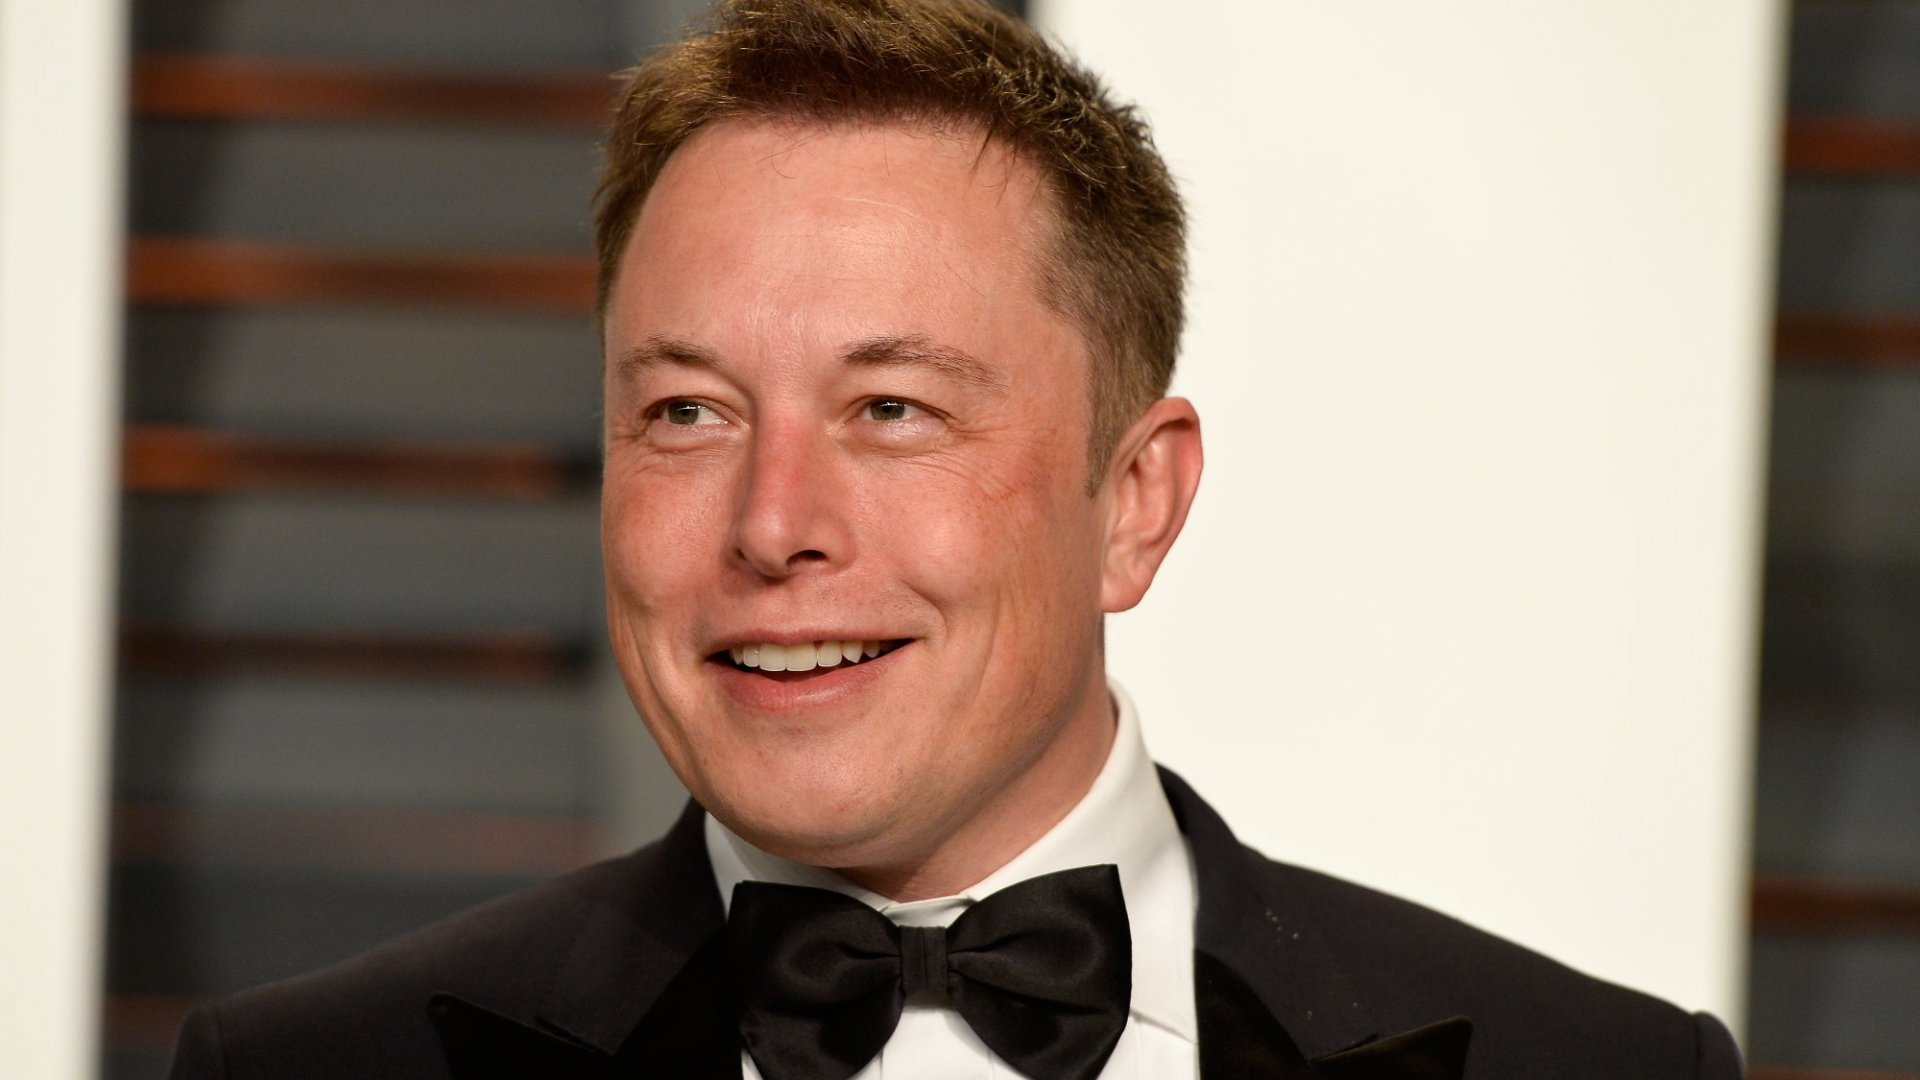 After Elon Musk Won His Case Against the Cave Explorer He Called 'Pedo Guy,' He Said His 'Faith in Humanity Is Restored'